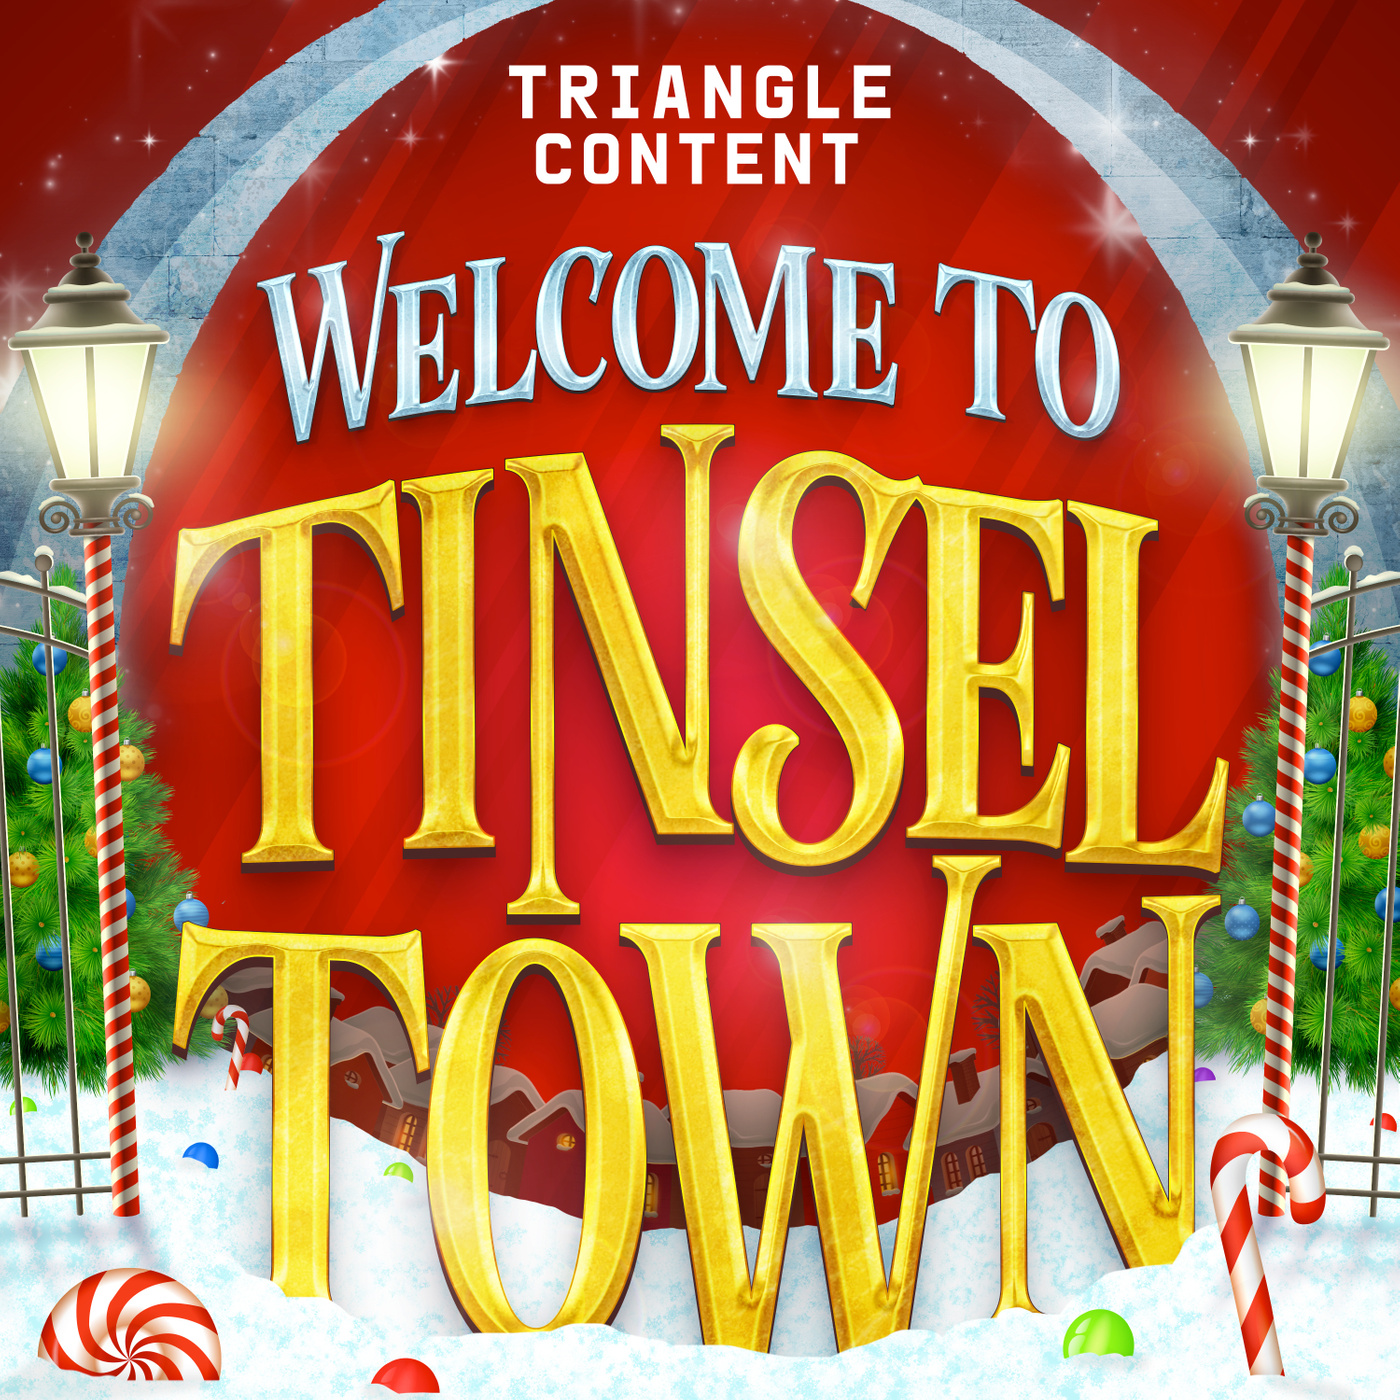 Introducing Welcome to Tinsel Town